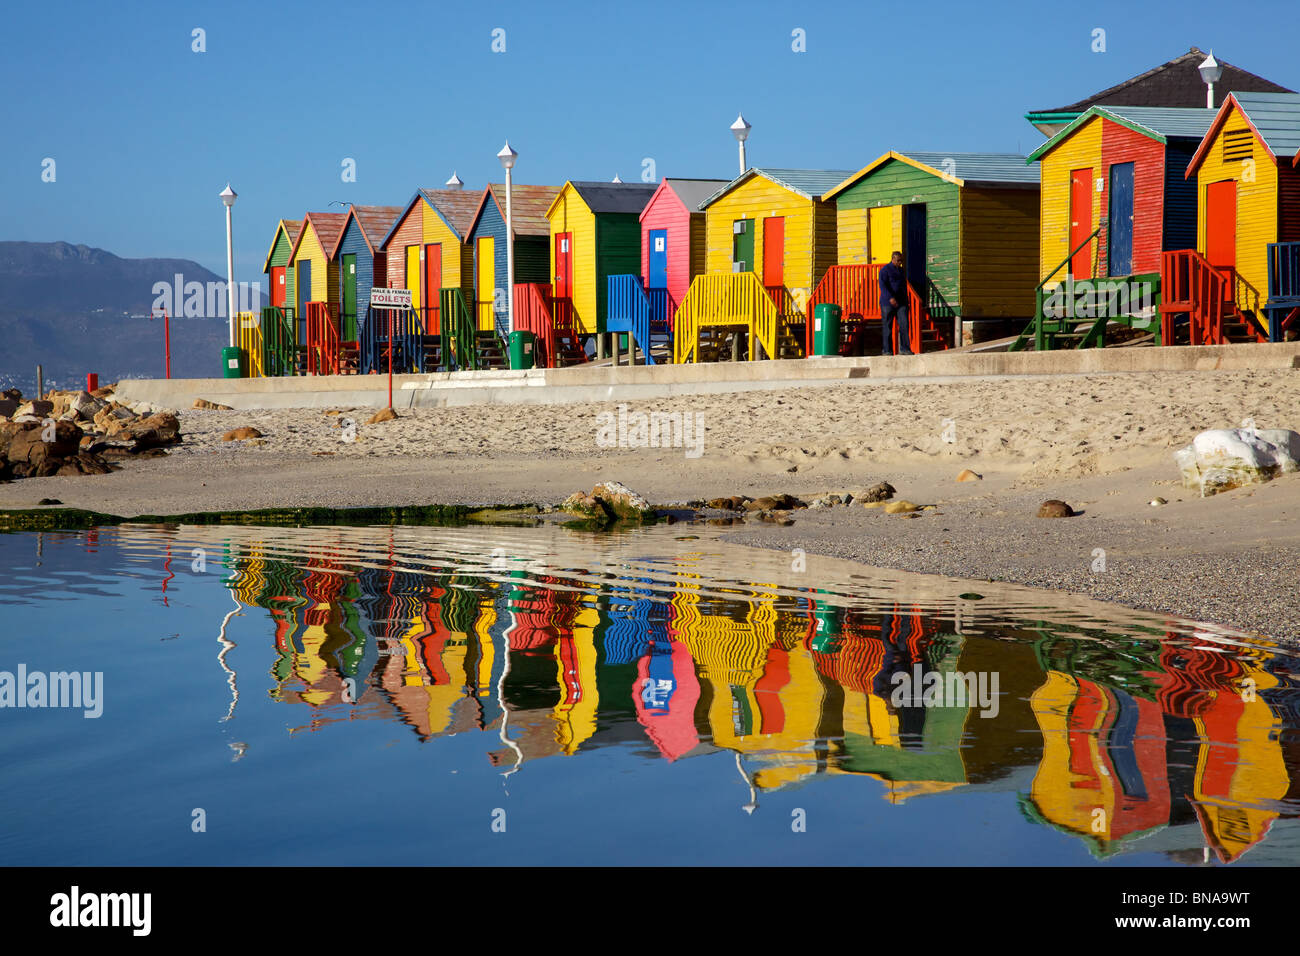 Brightly painted wooden bathing huts at St James Beach, near Cape Town, South Africa. Stock Photo